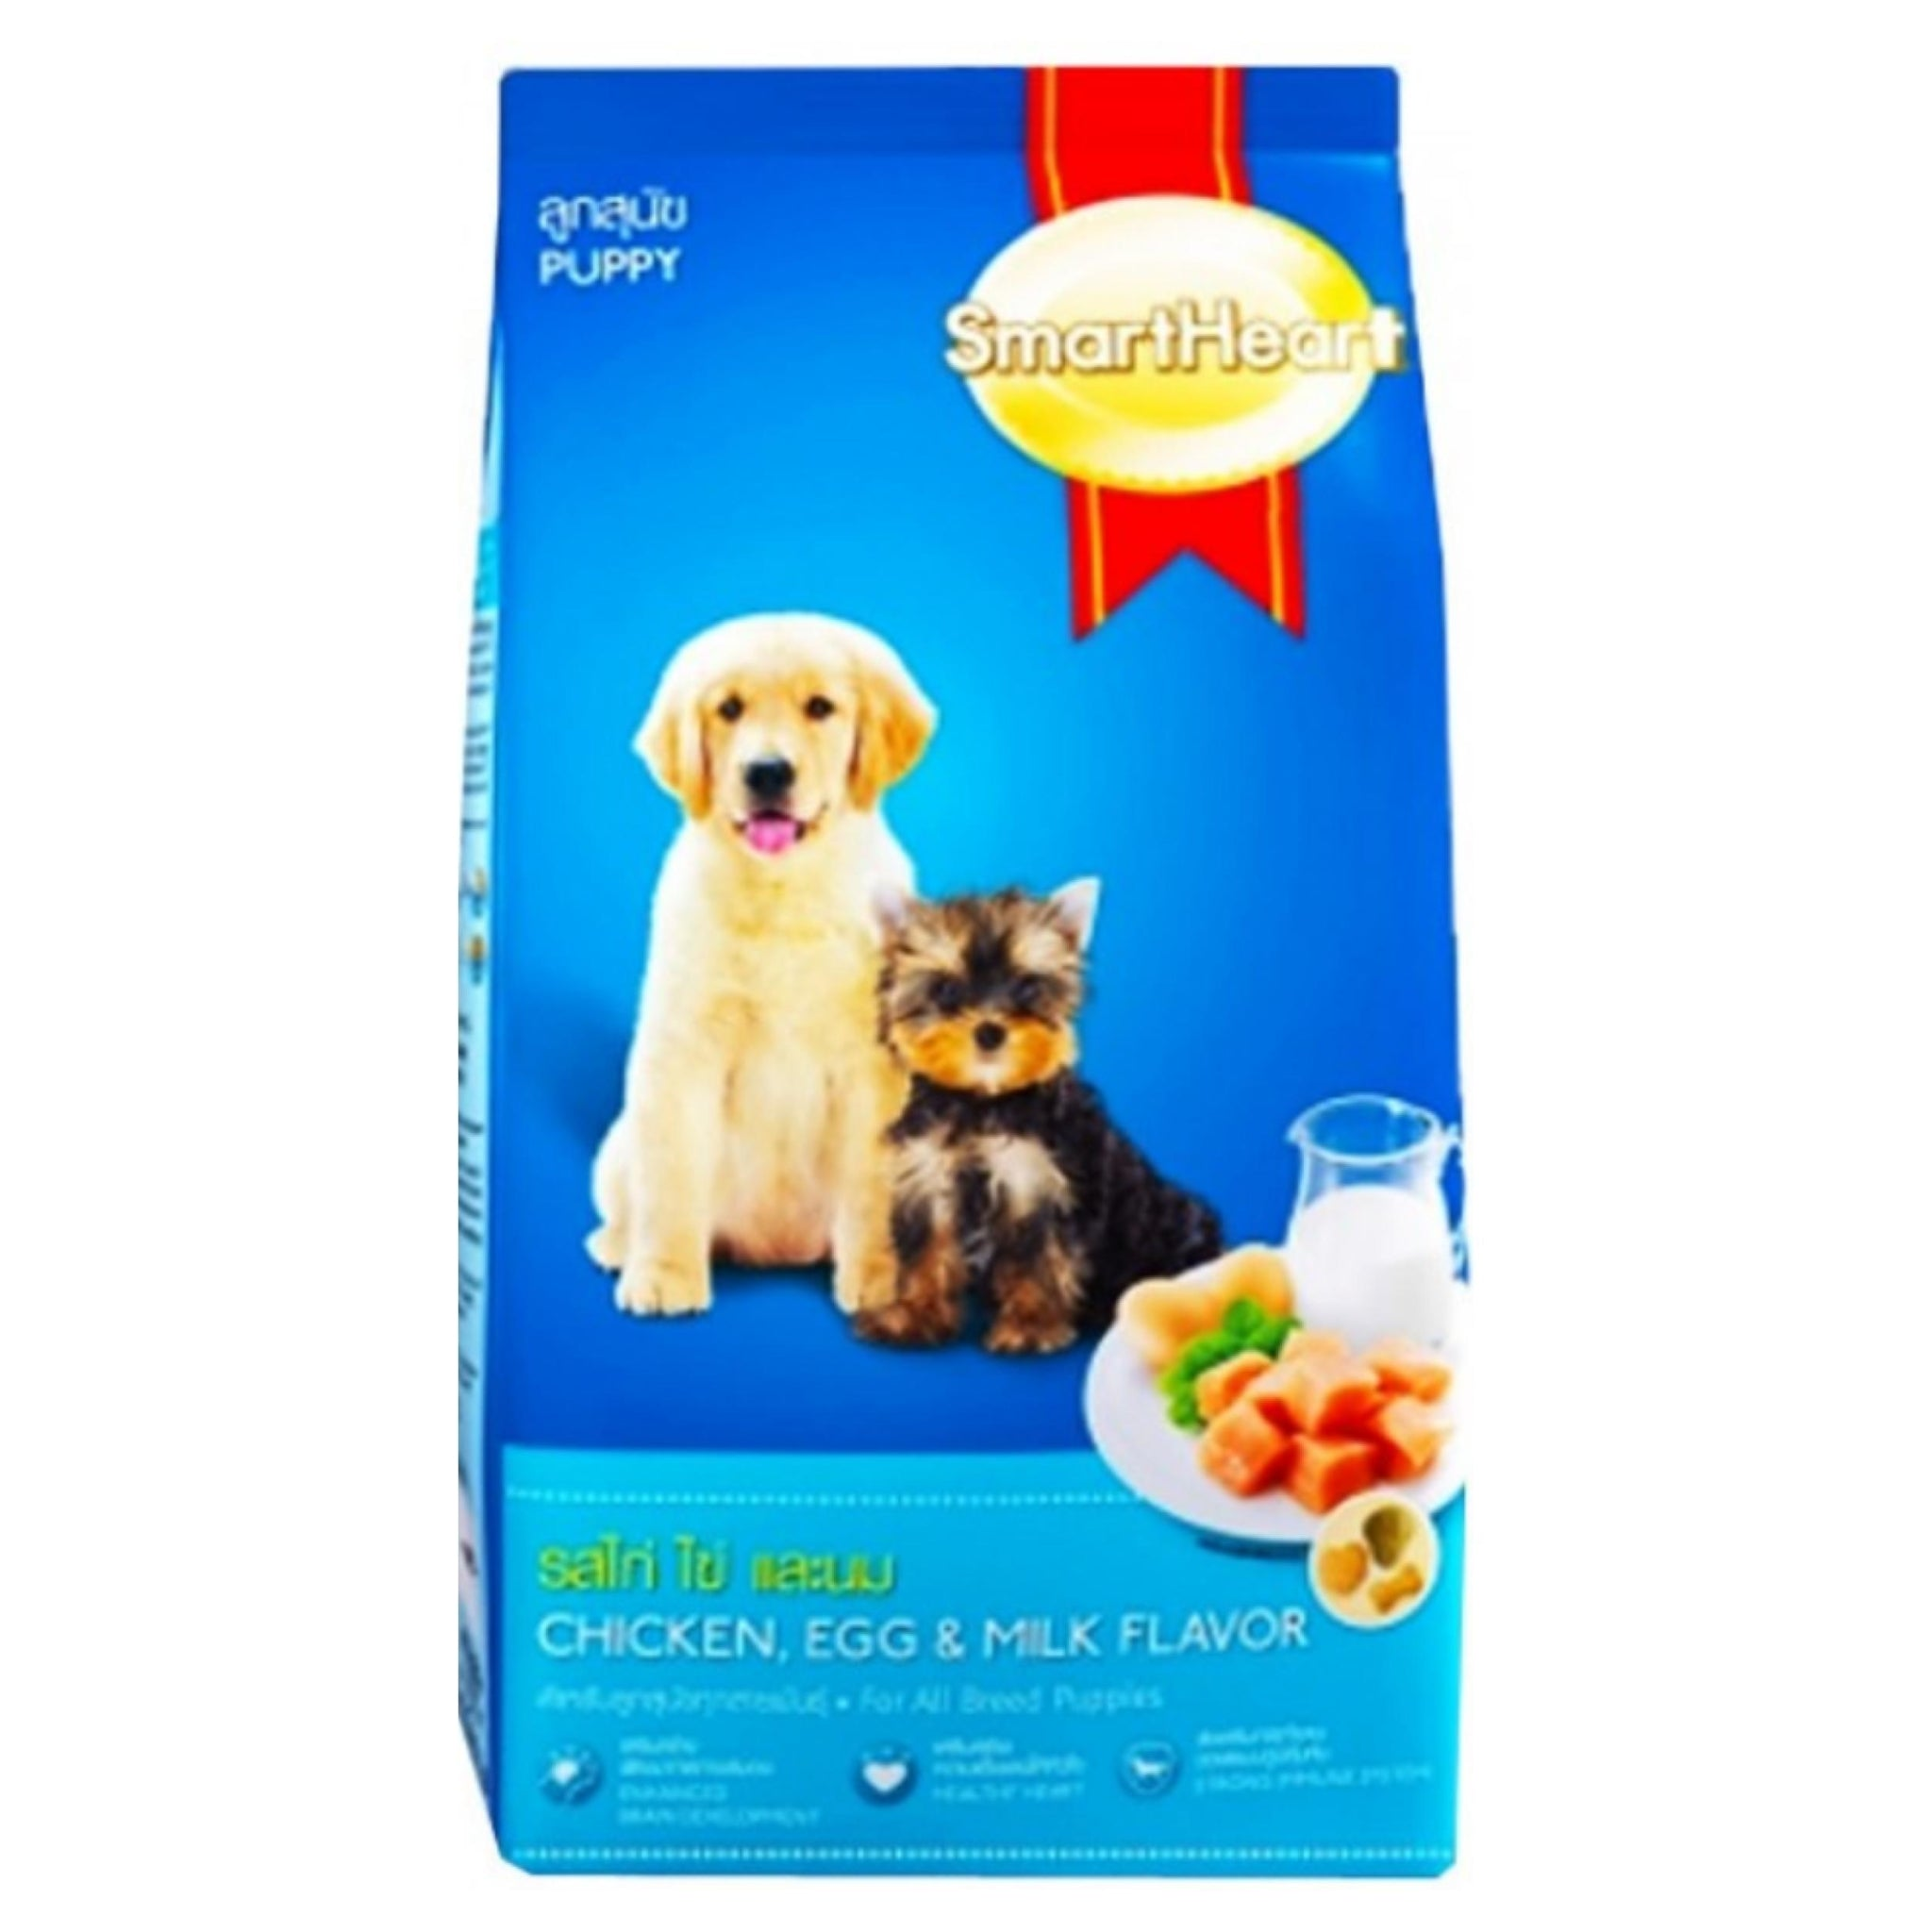 Smart Heart Chicken Egg and Milk Puppy Dog Food - Poochles